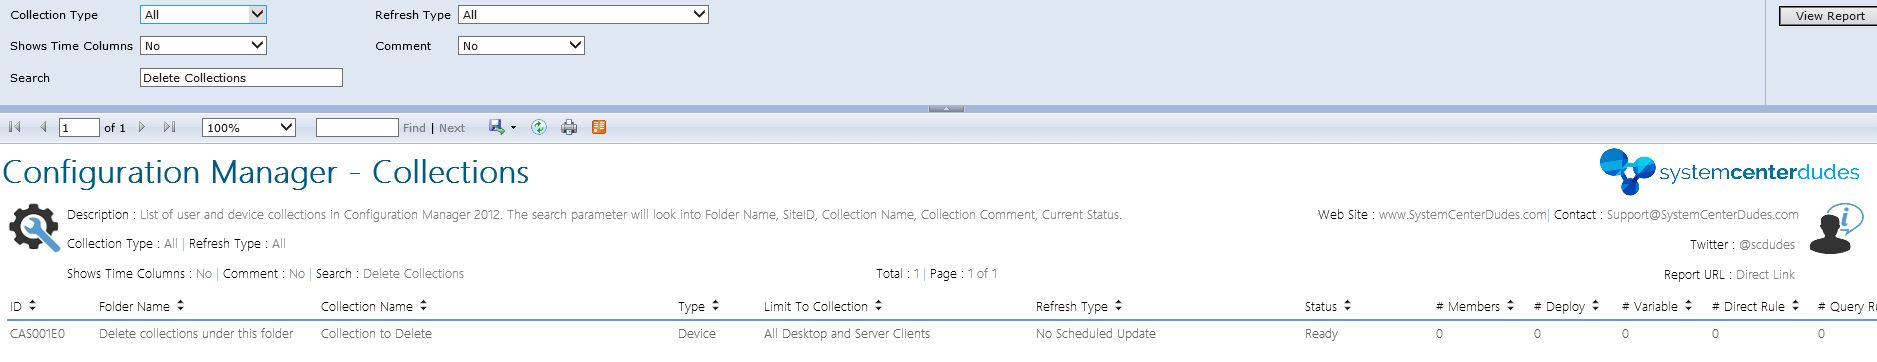 Powershell script to delete older collections in a folder in SCCM